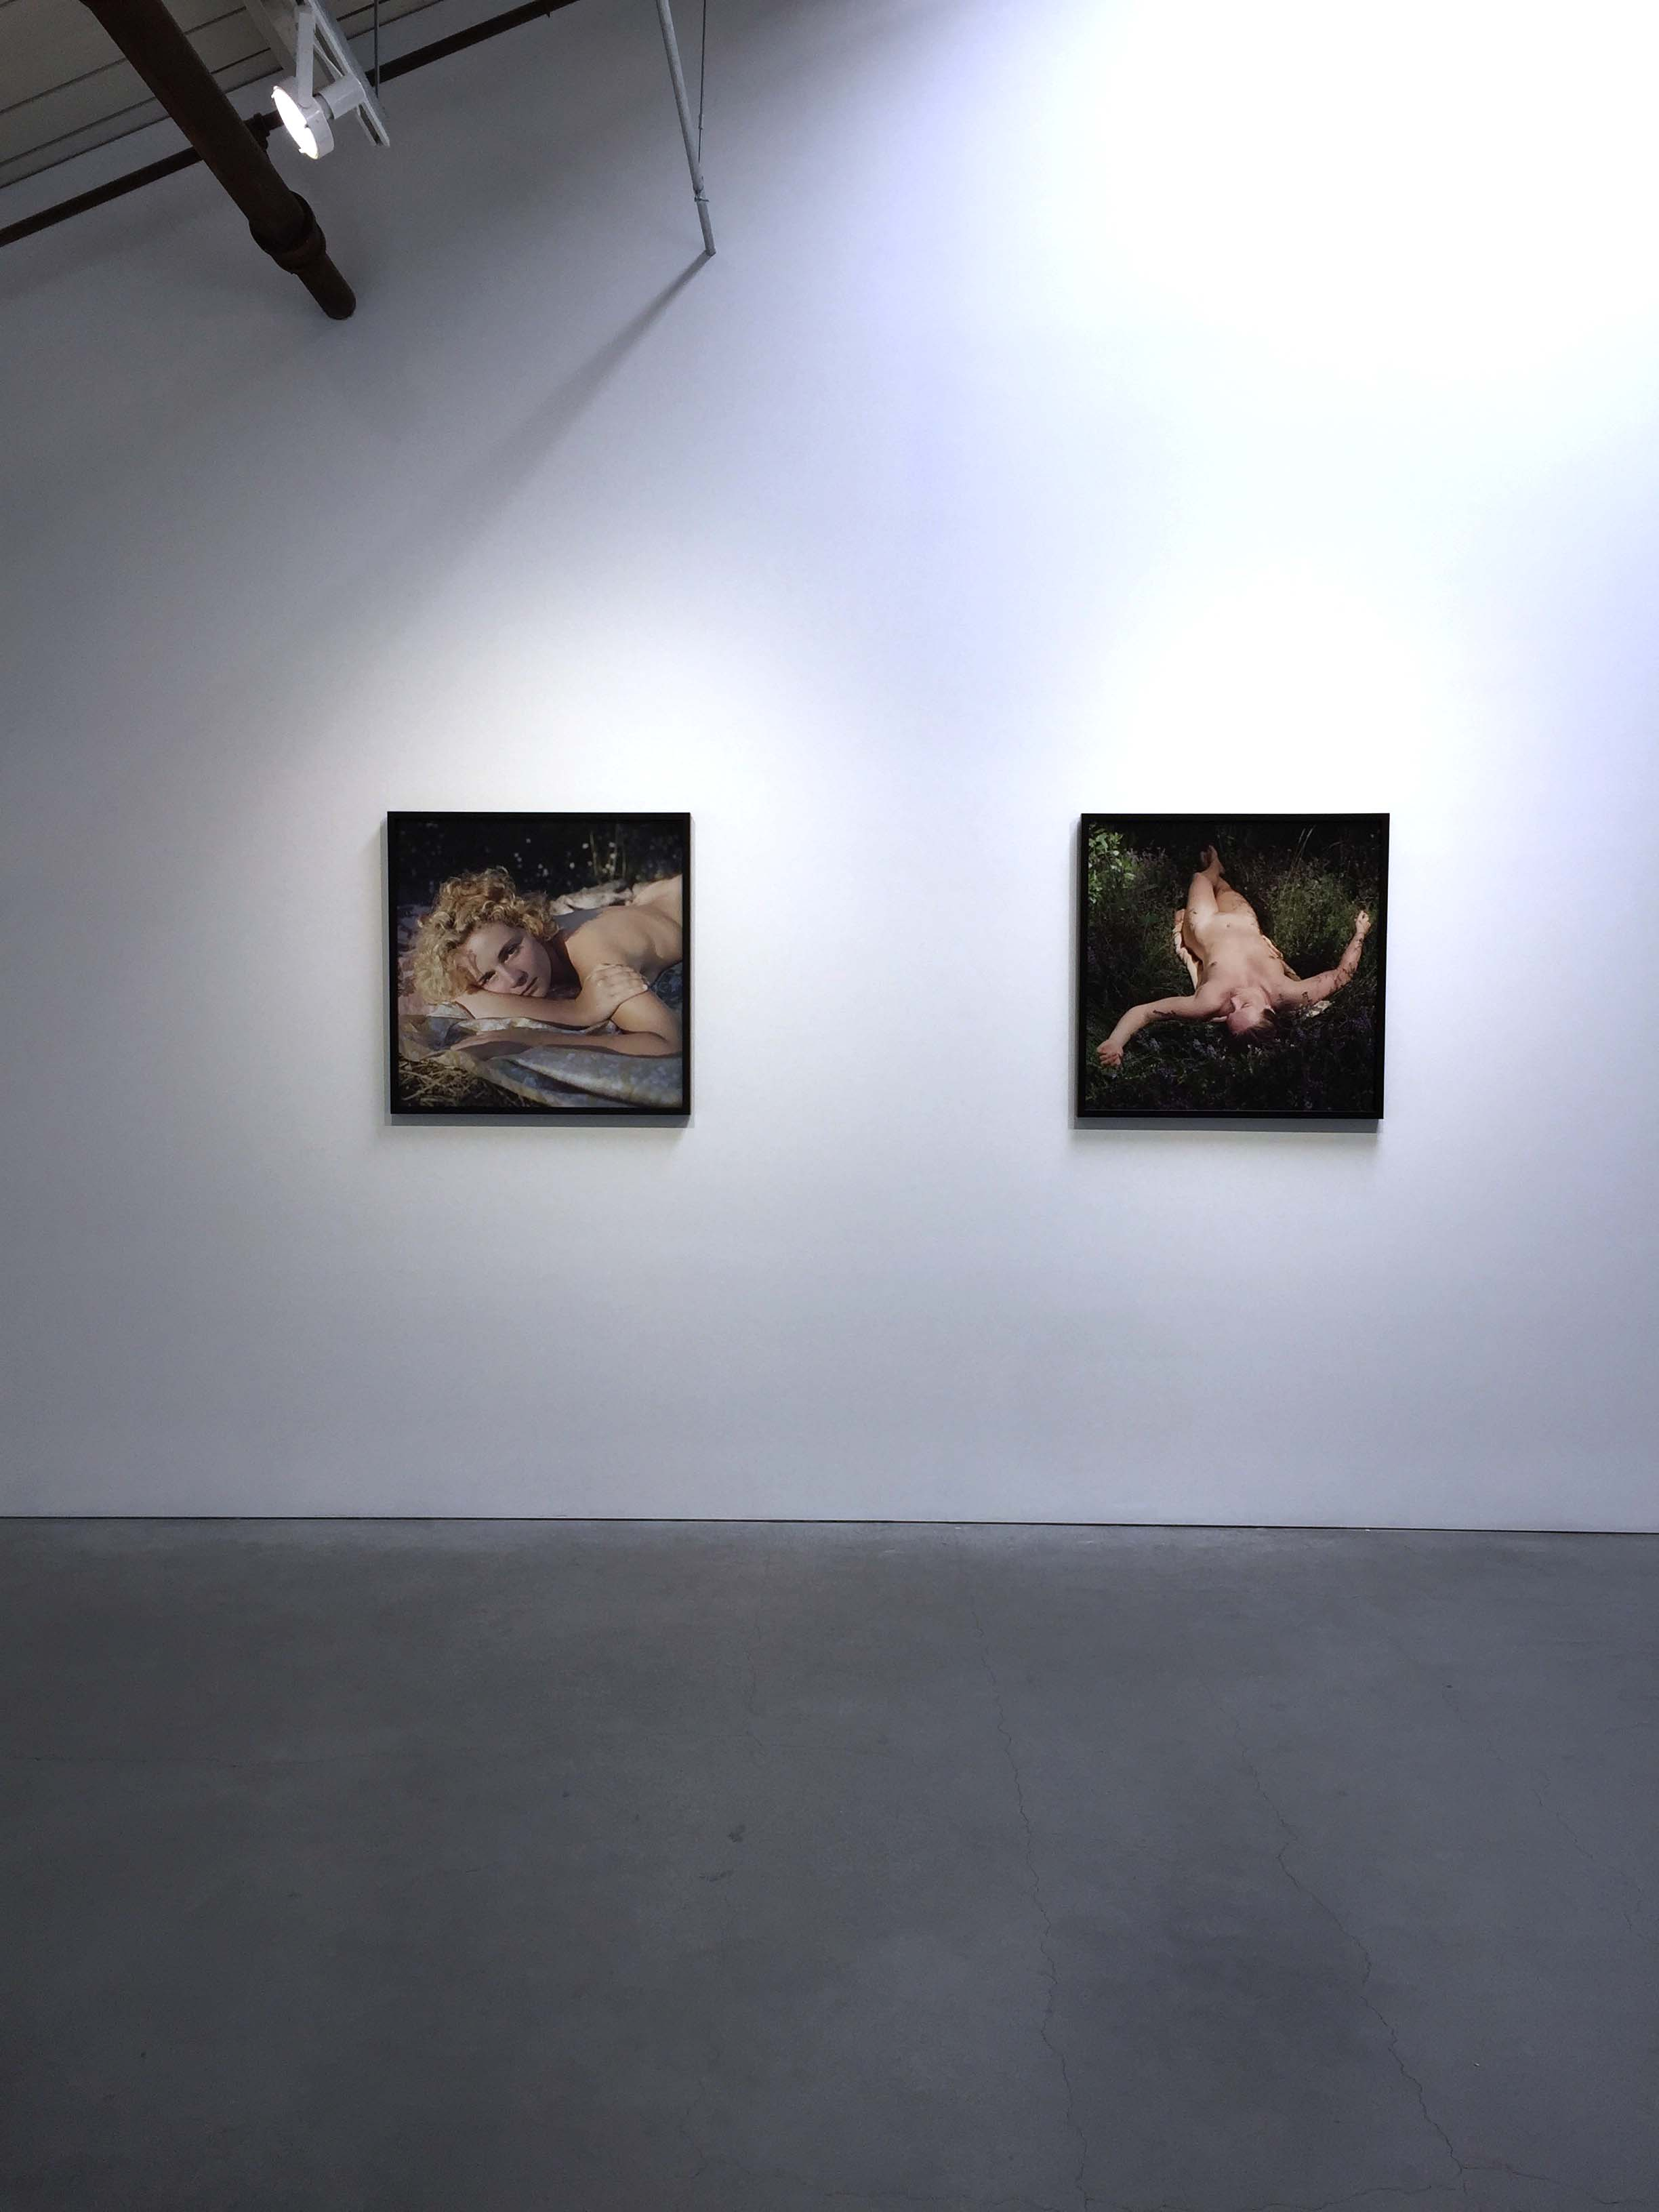 Installation view Mona Kuhn: The First Chapter ,  May 4 - June 10, 2017 at EUQINOM Gallery